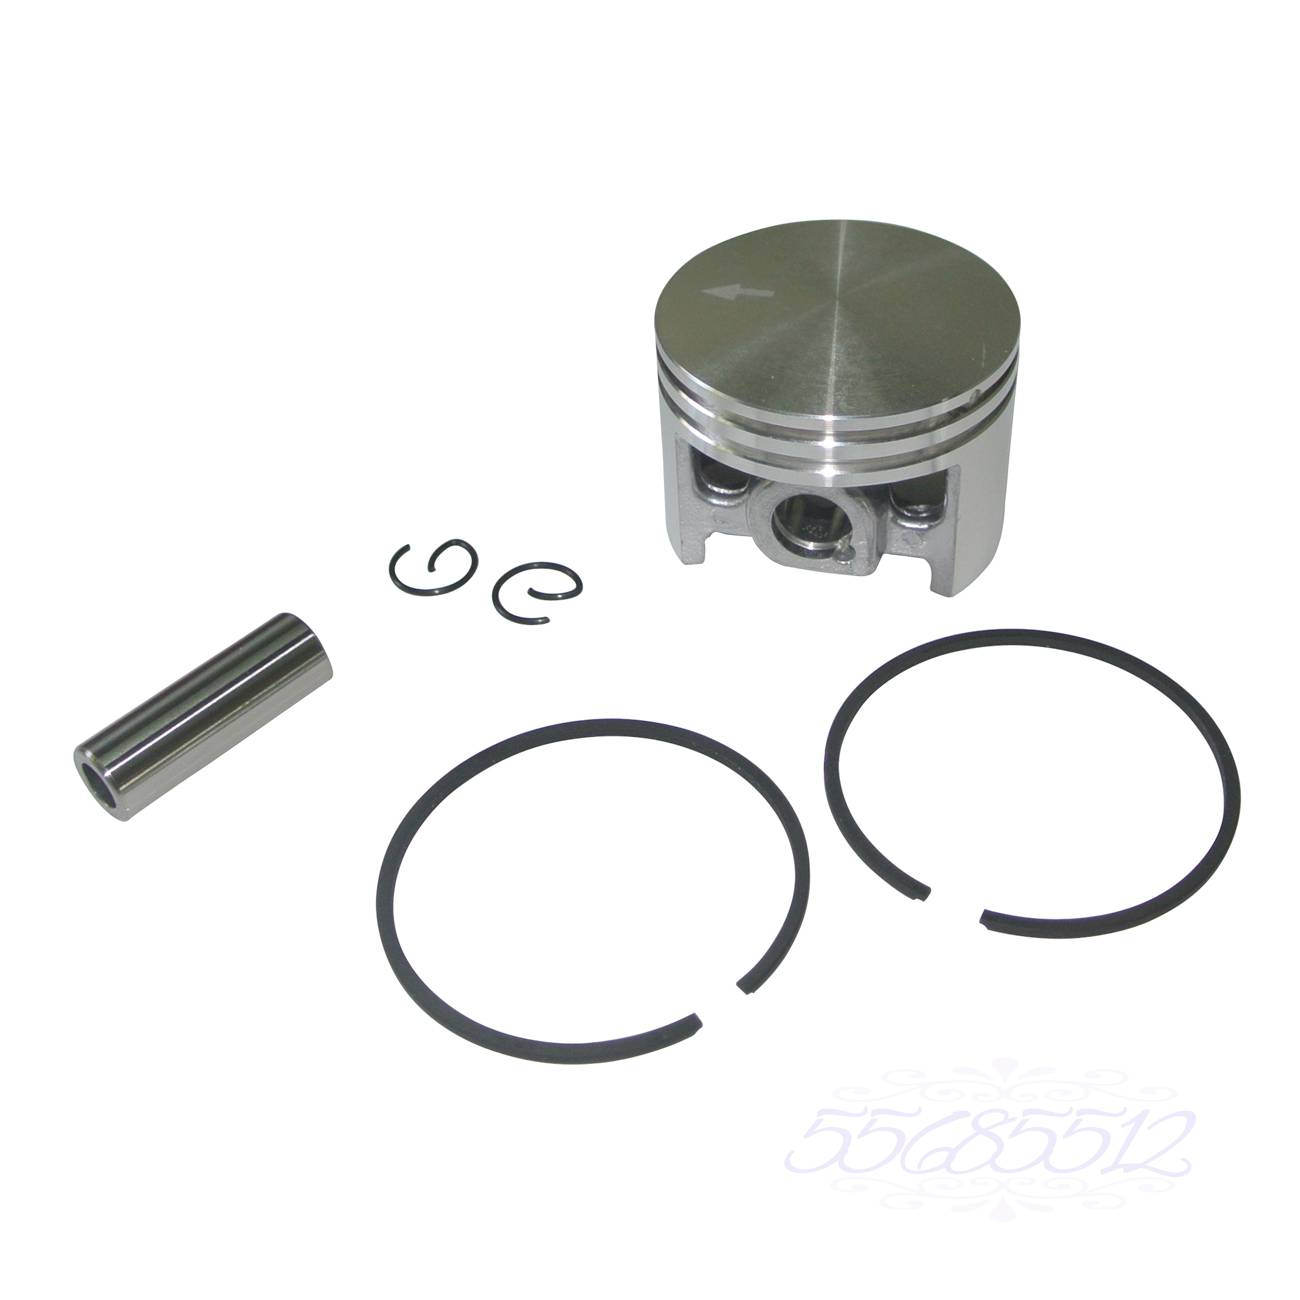 44mm Piston ve Halkalar Kiti Fit Stihl 026 MS260 MS260C 026 PRO Testereler 1